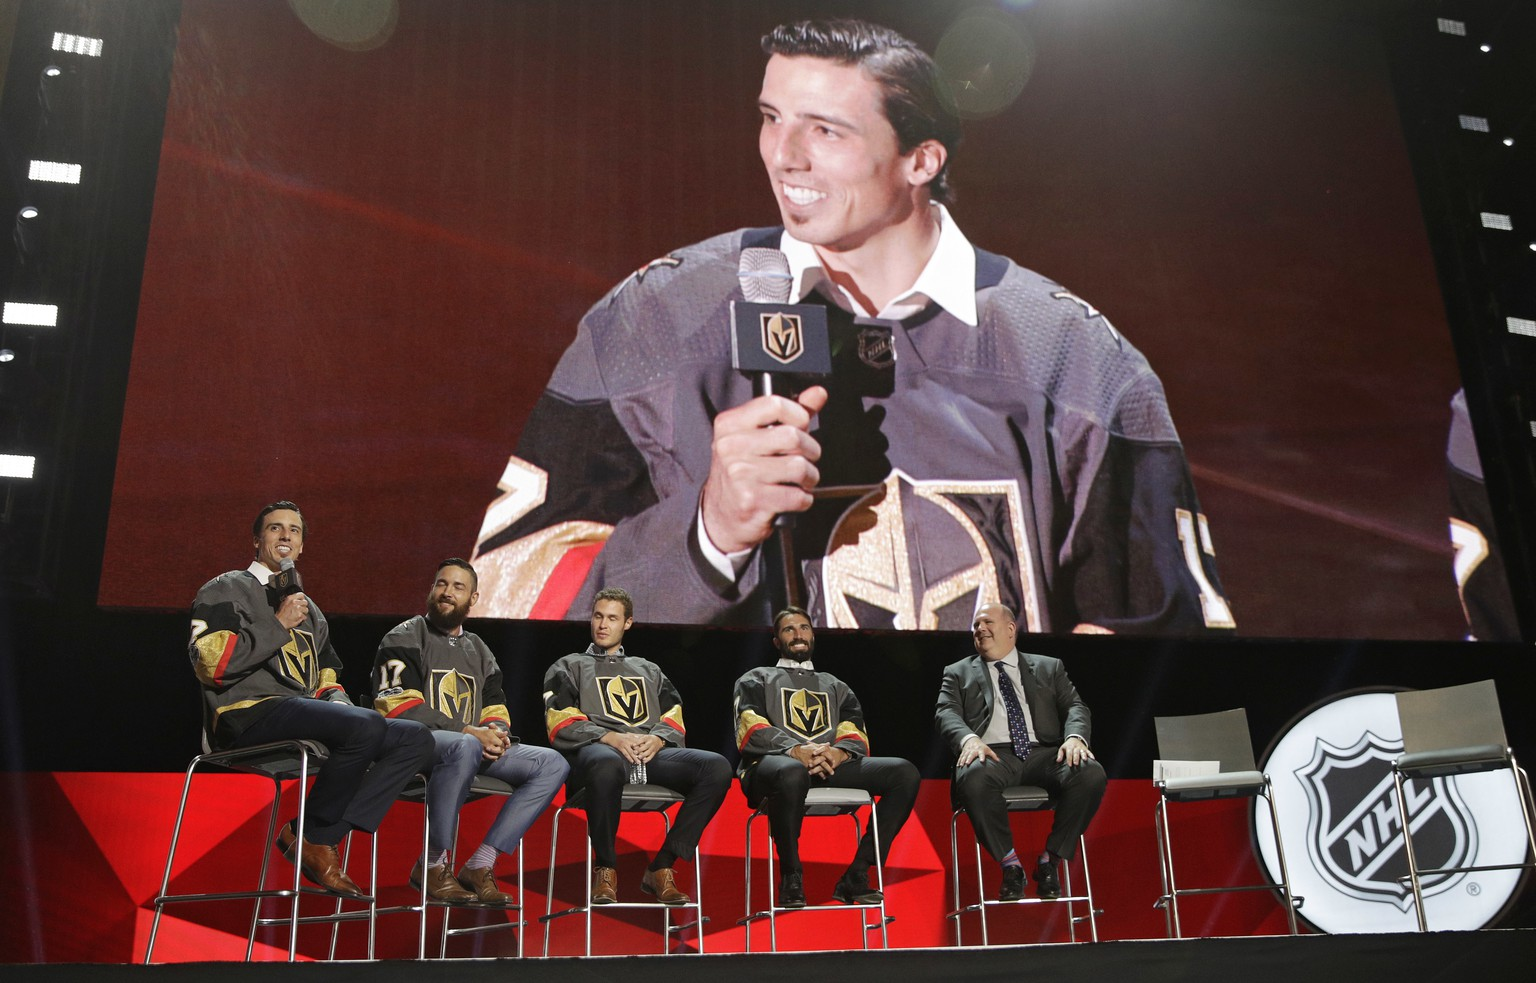 From left, Vegas Golden Knights' Marc-Andre Fleury, Deryk Engelland, Brayden McNabb and Jason Garrison sit on stage during an event following the NHL expansion draft, Wednesday, June 21, 2017, in Las Vegas. Fleury was picked by the Golden Knights in the NHL expansion draft. (AP Photo/John Locher)